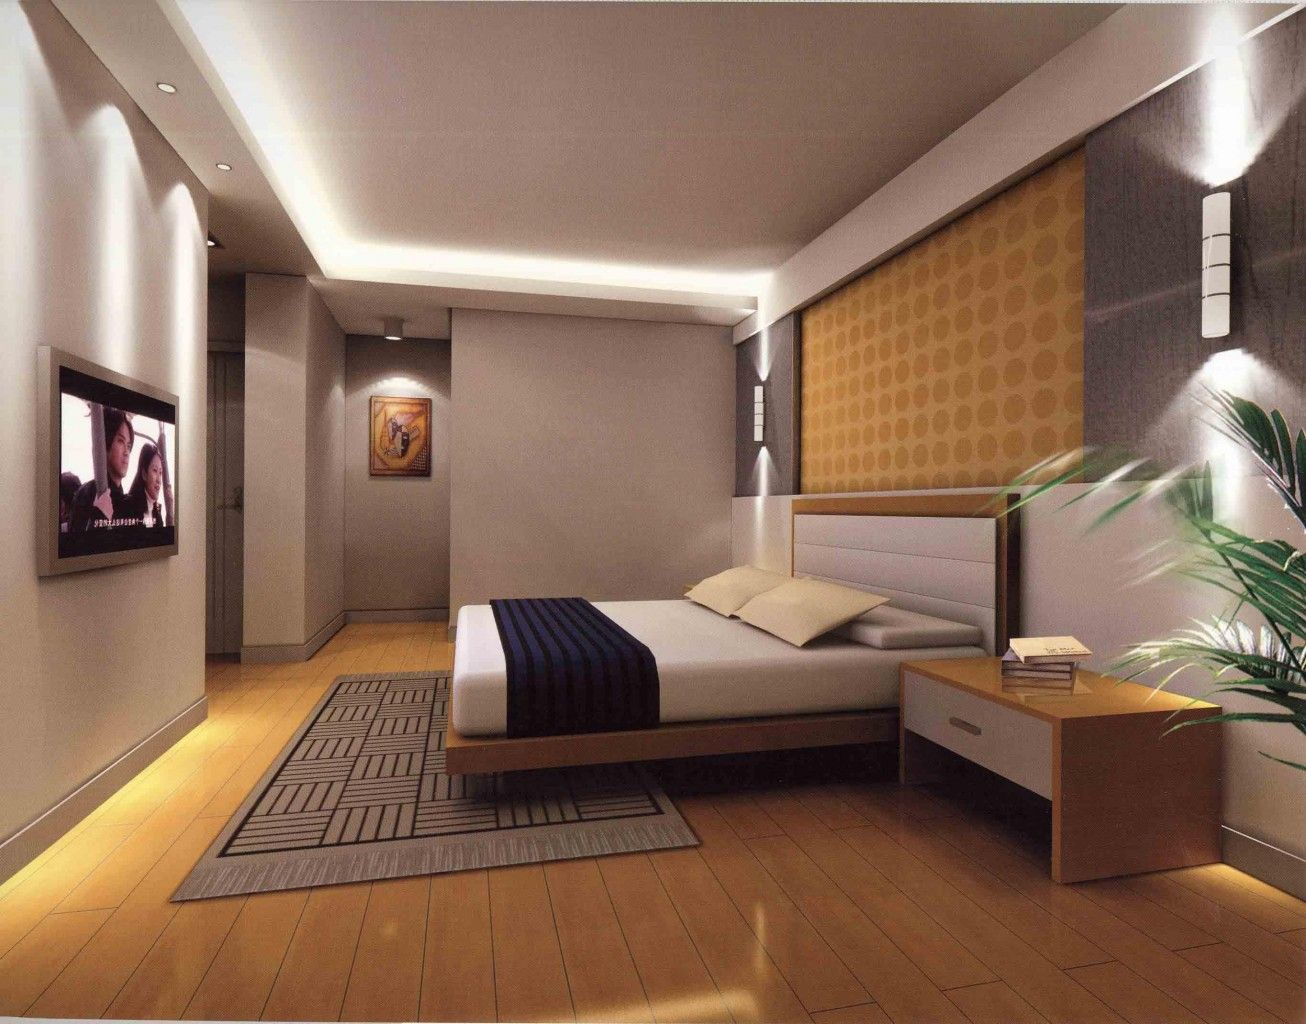 Master bedroom interior design - Awesome Master Bedroom Interior Design Ideas With Modern King Size Bed Fur Rug Flat Tv Screen